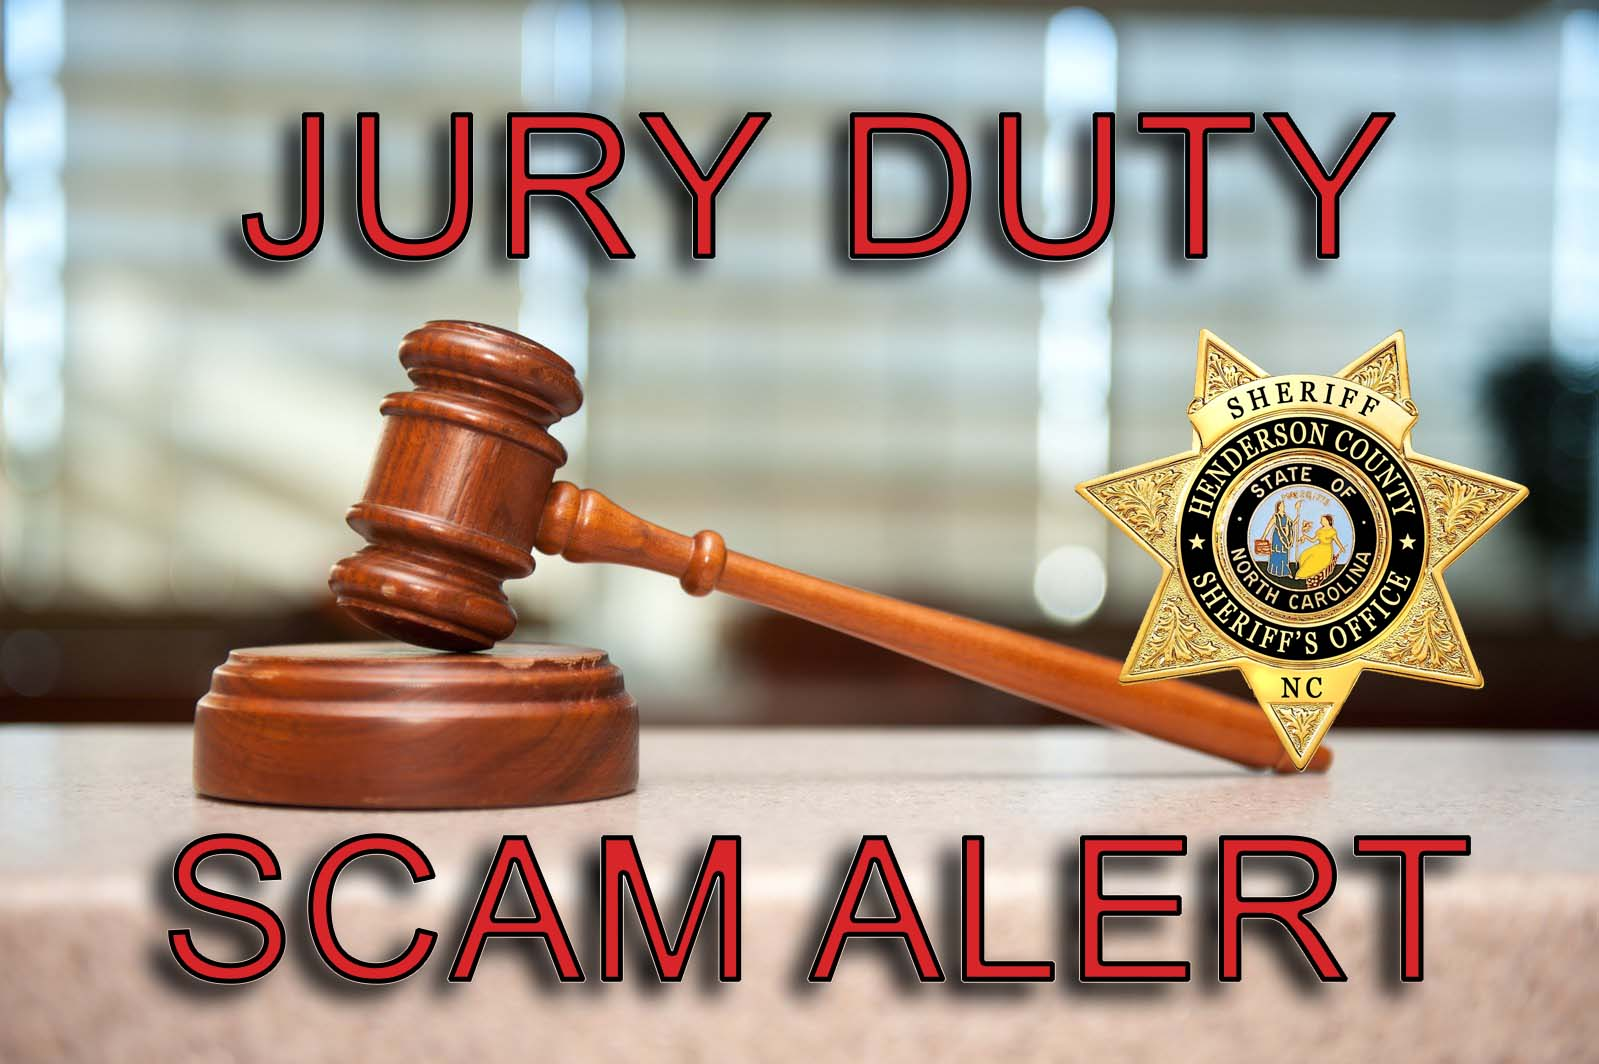 If ever you get a robocall telling you that you failed to show up for jury duty and that the sheriff is coming to arrest you, it's probably just a phone scam – unless you're my flaky, absent-minded friend, Bert Zingwold, in which case, yeah, it's probably for real. He's always forgetting about important appointments.